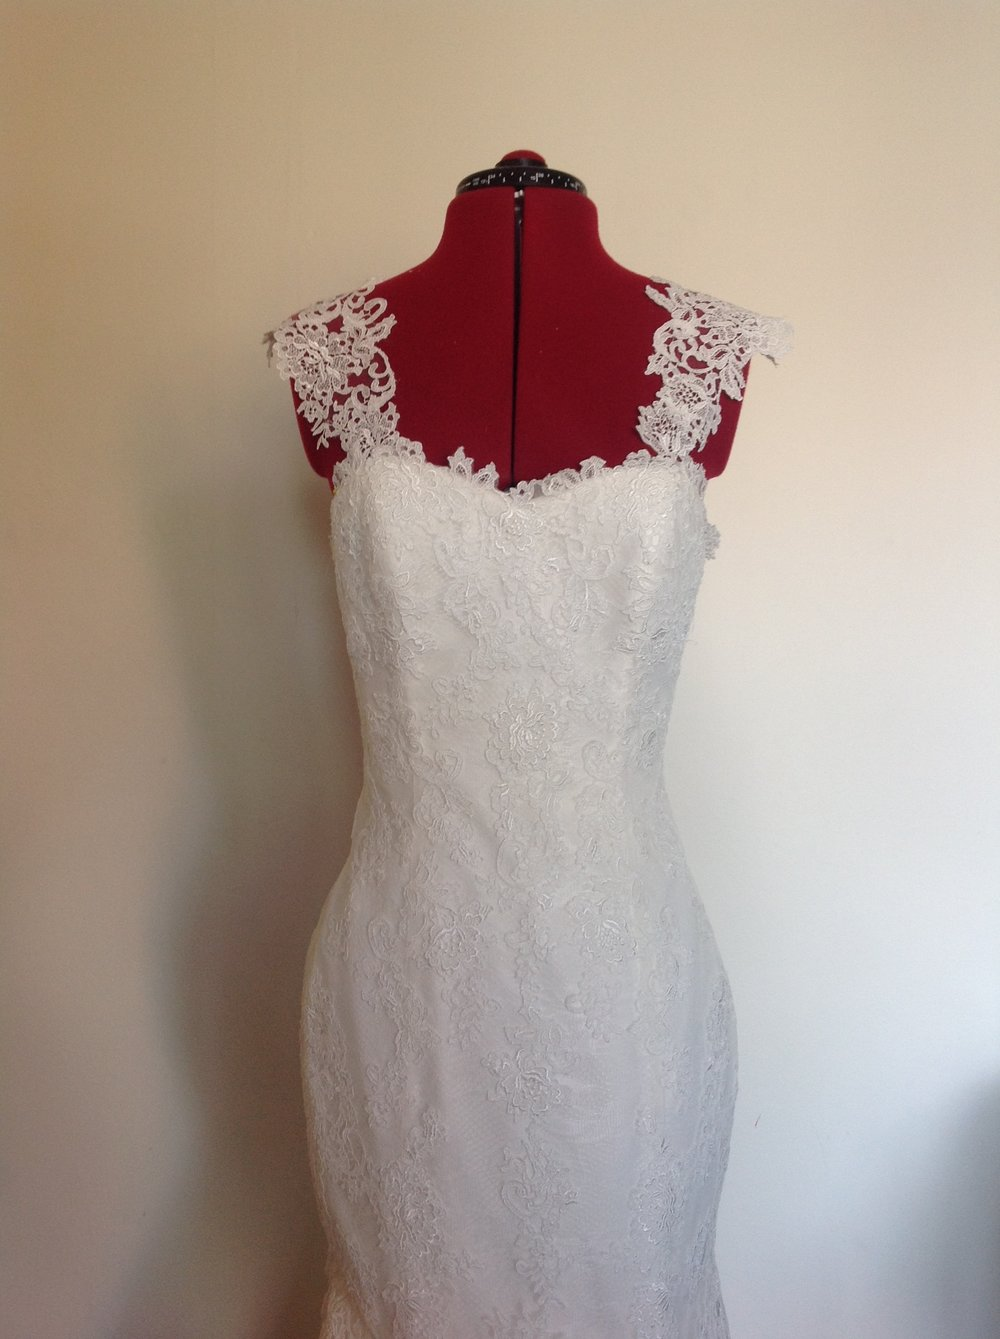 4256bc08a1 The lace on this dress was appliquéd on in pieces